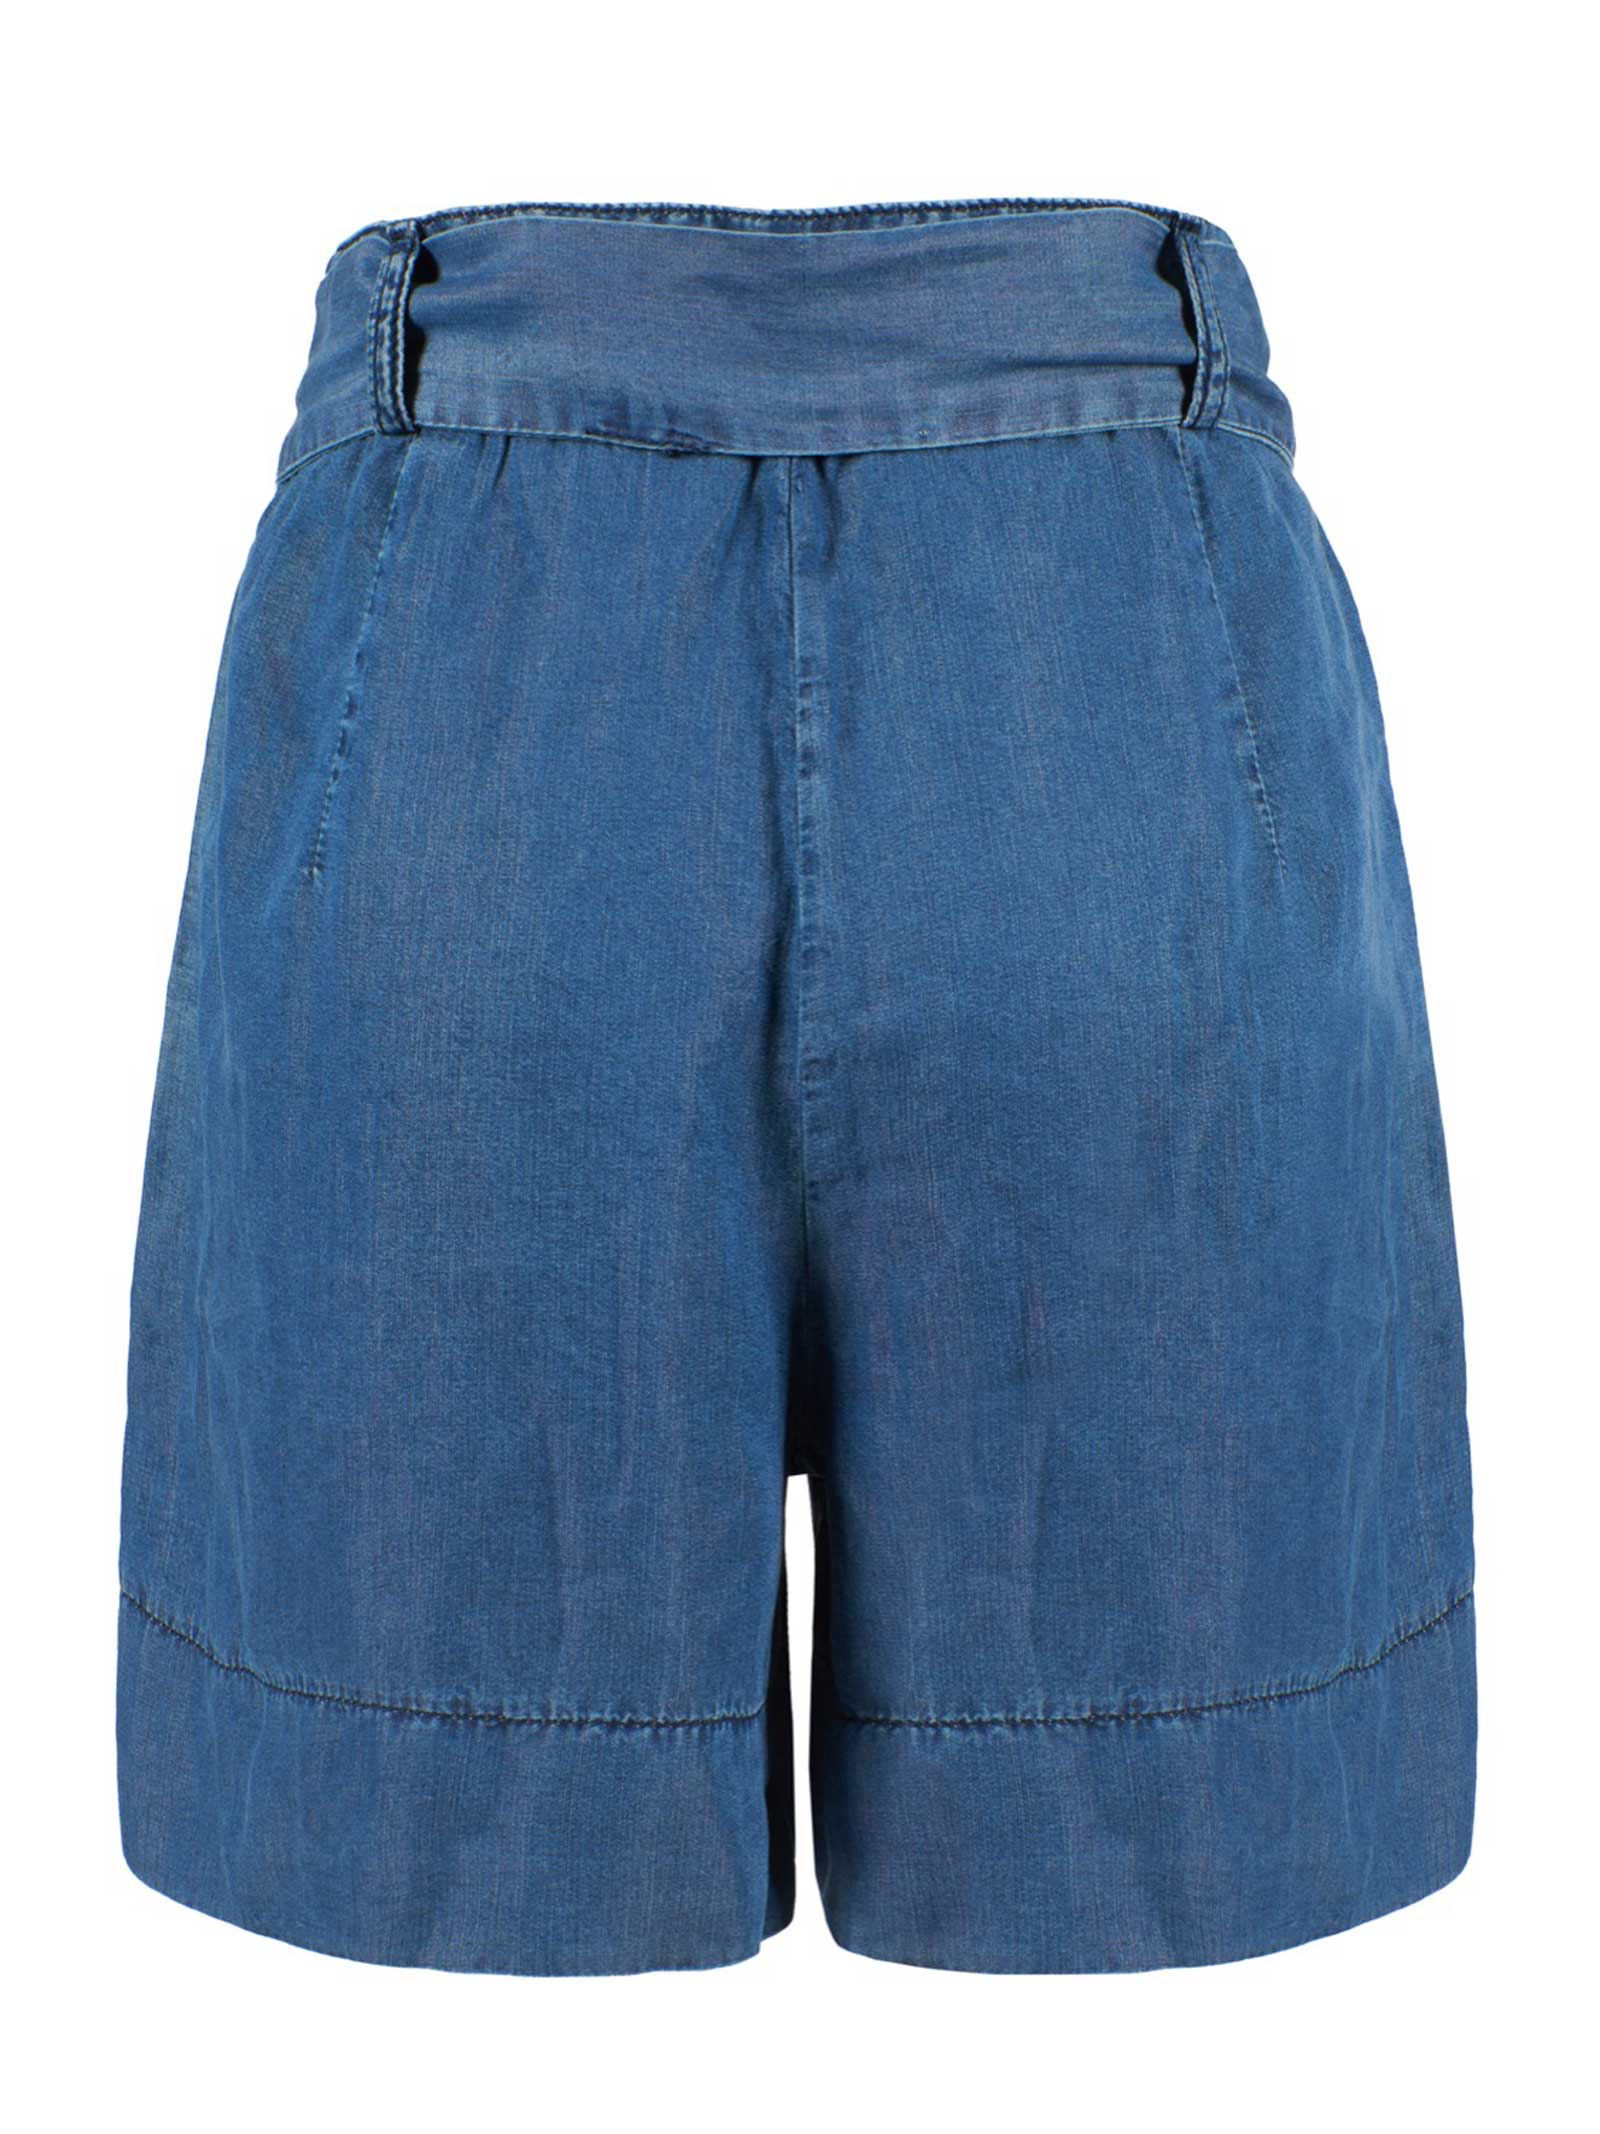 SHORTS DONNA YES ZEE | Short | P279-X805J711